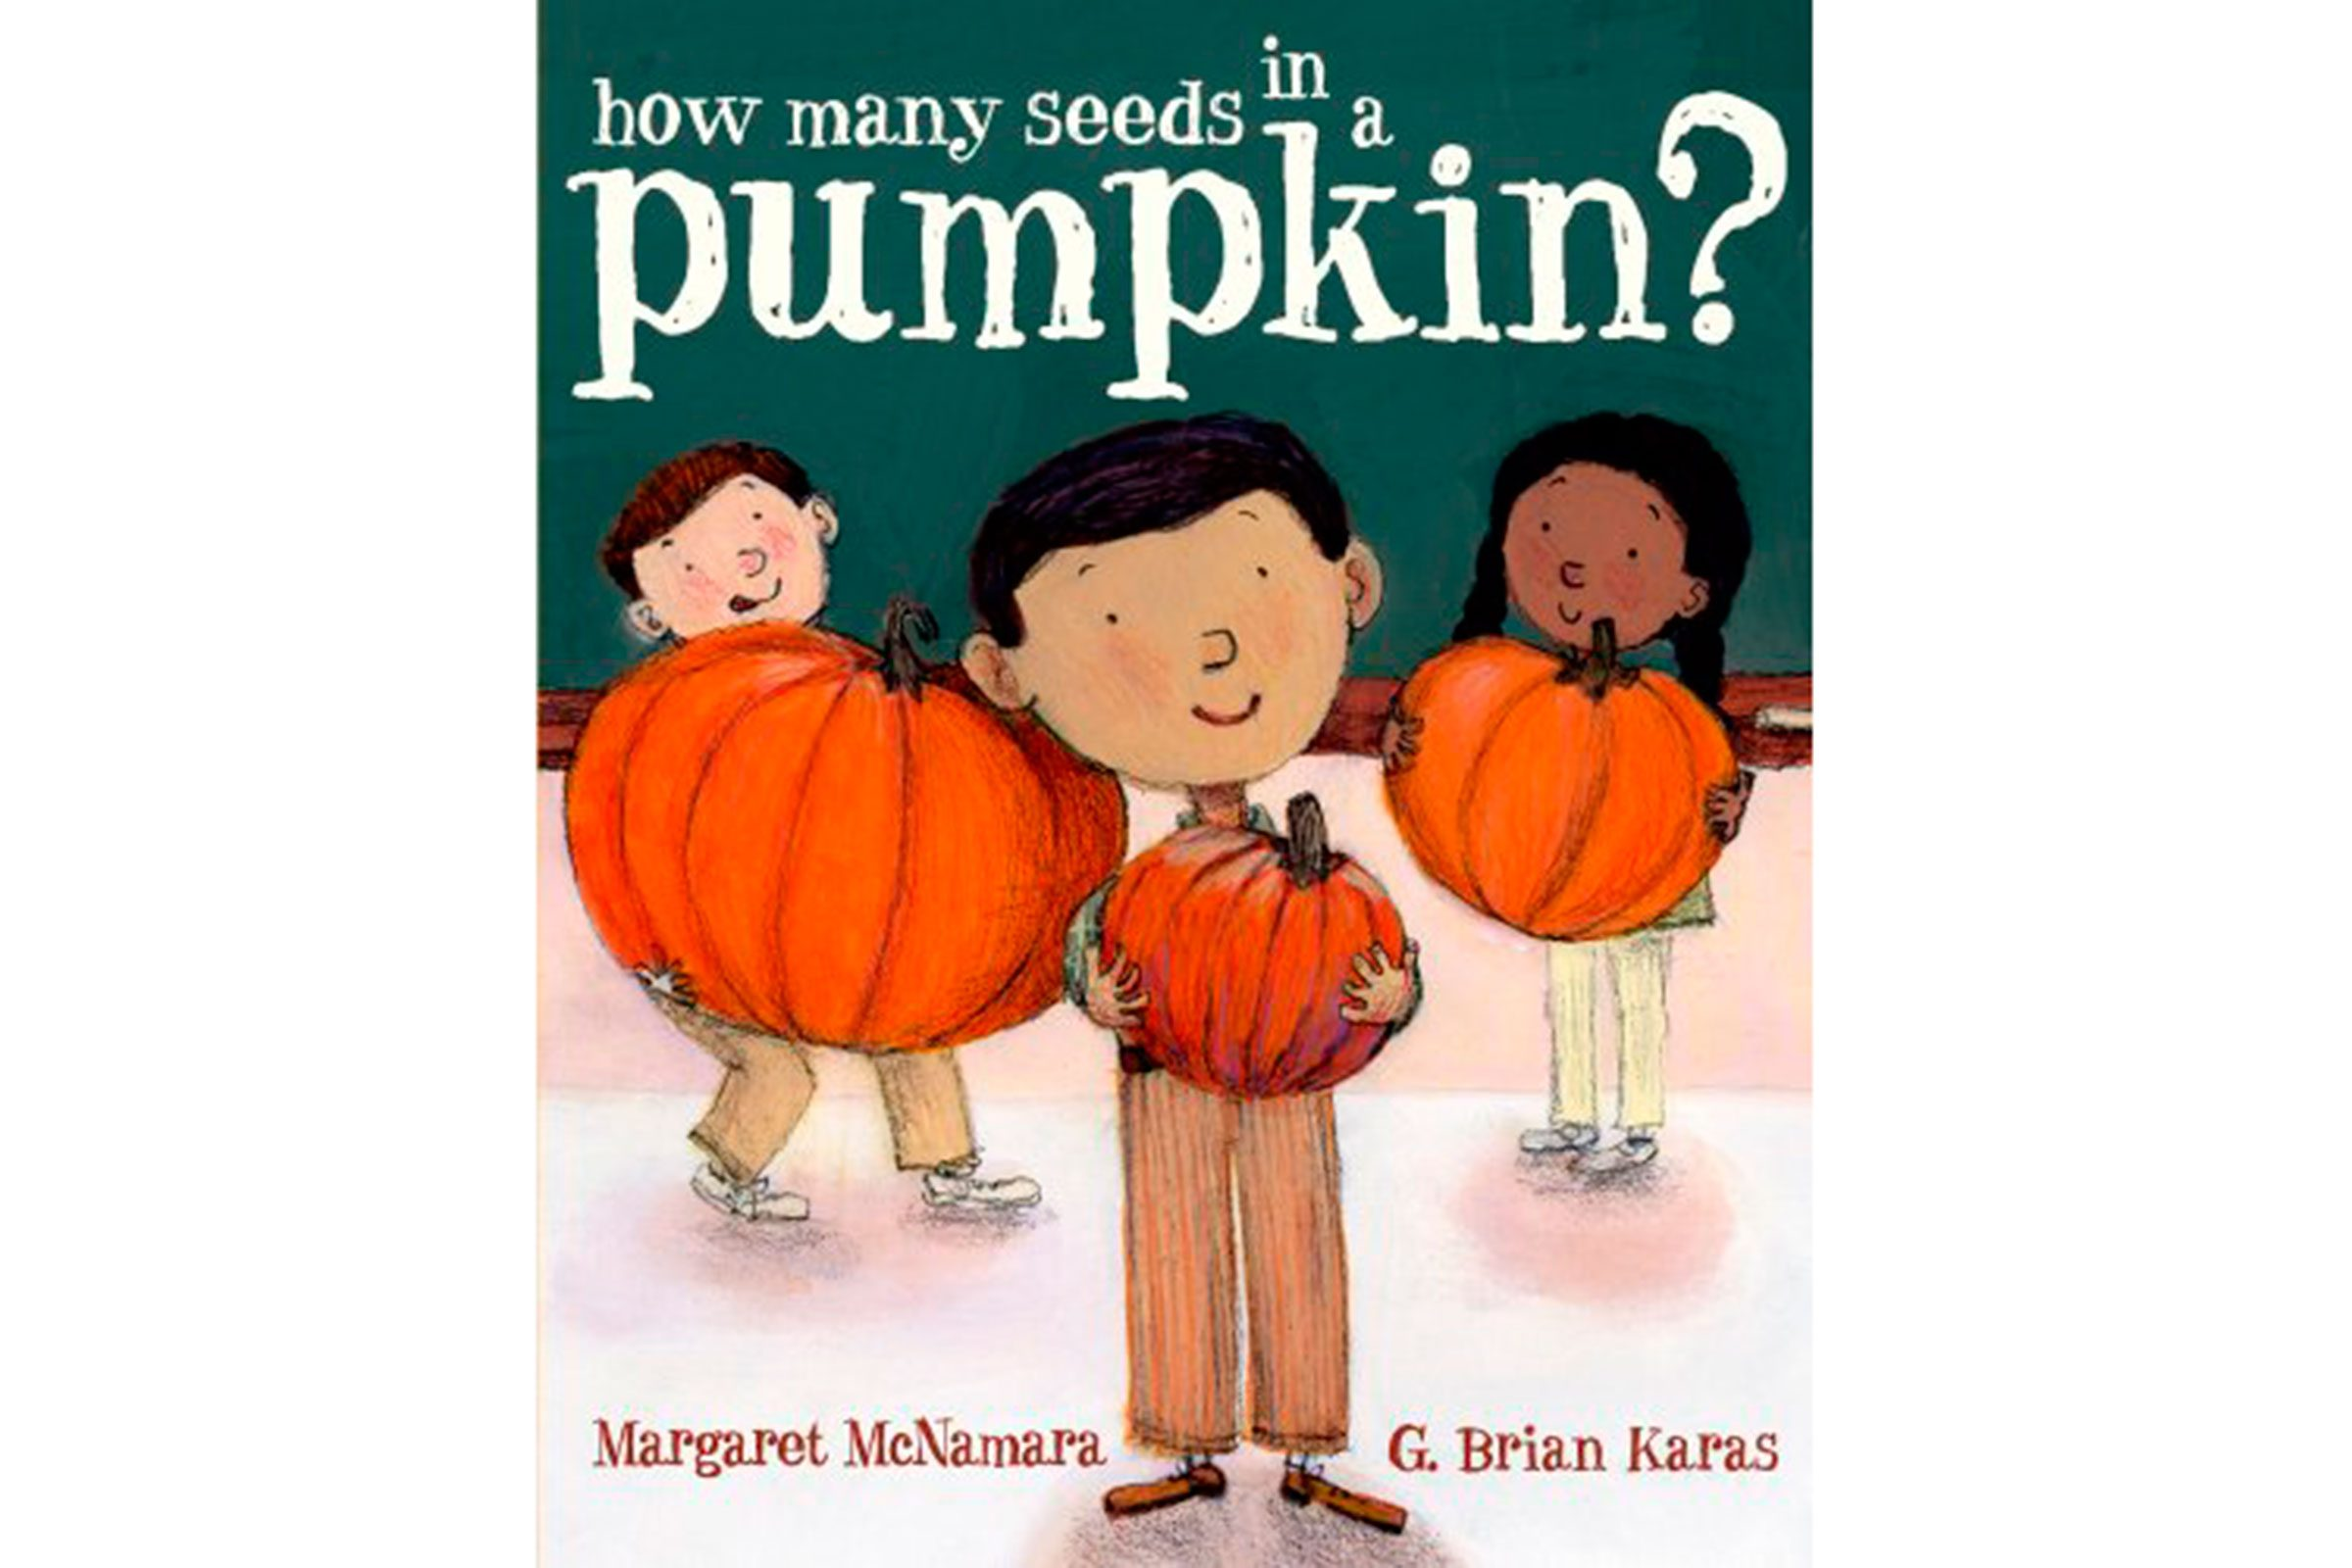 how many seeds in a pumpkin by margaret mcnamara and illustrated by g brian karas - Halloween Kids Books